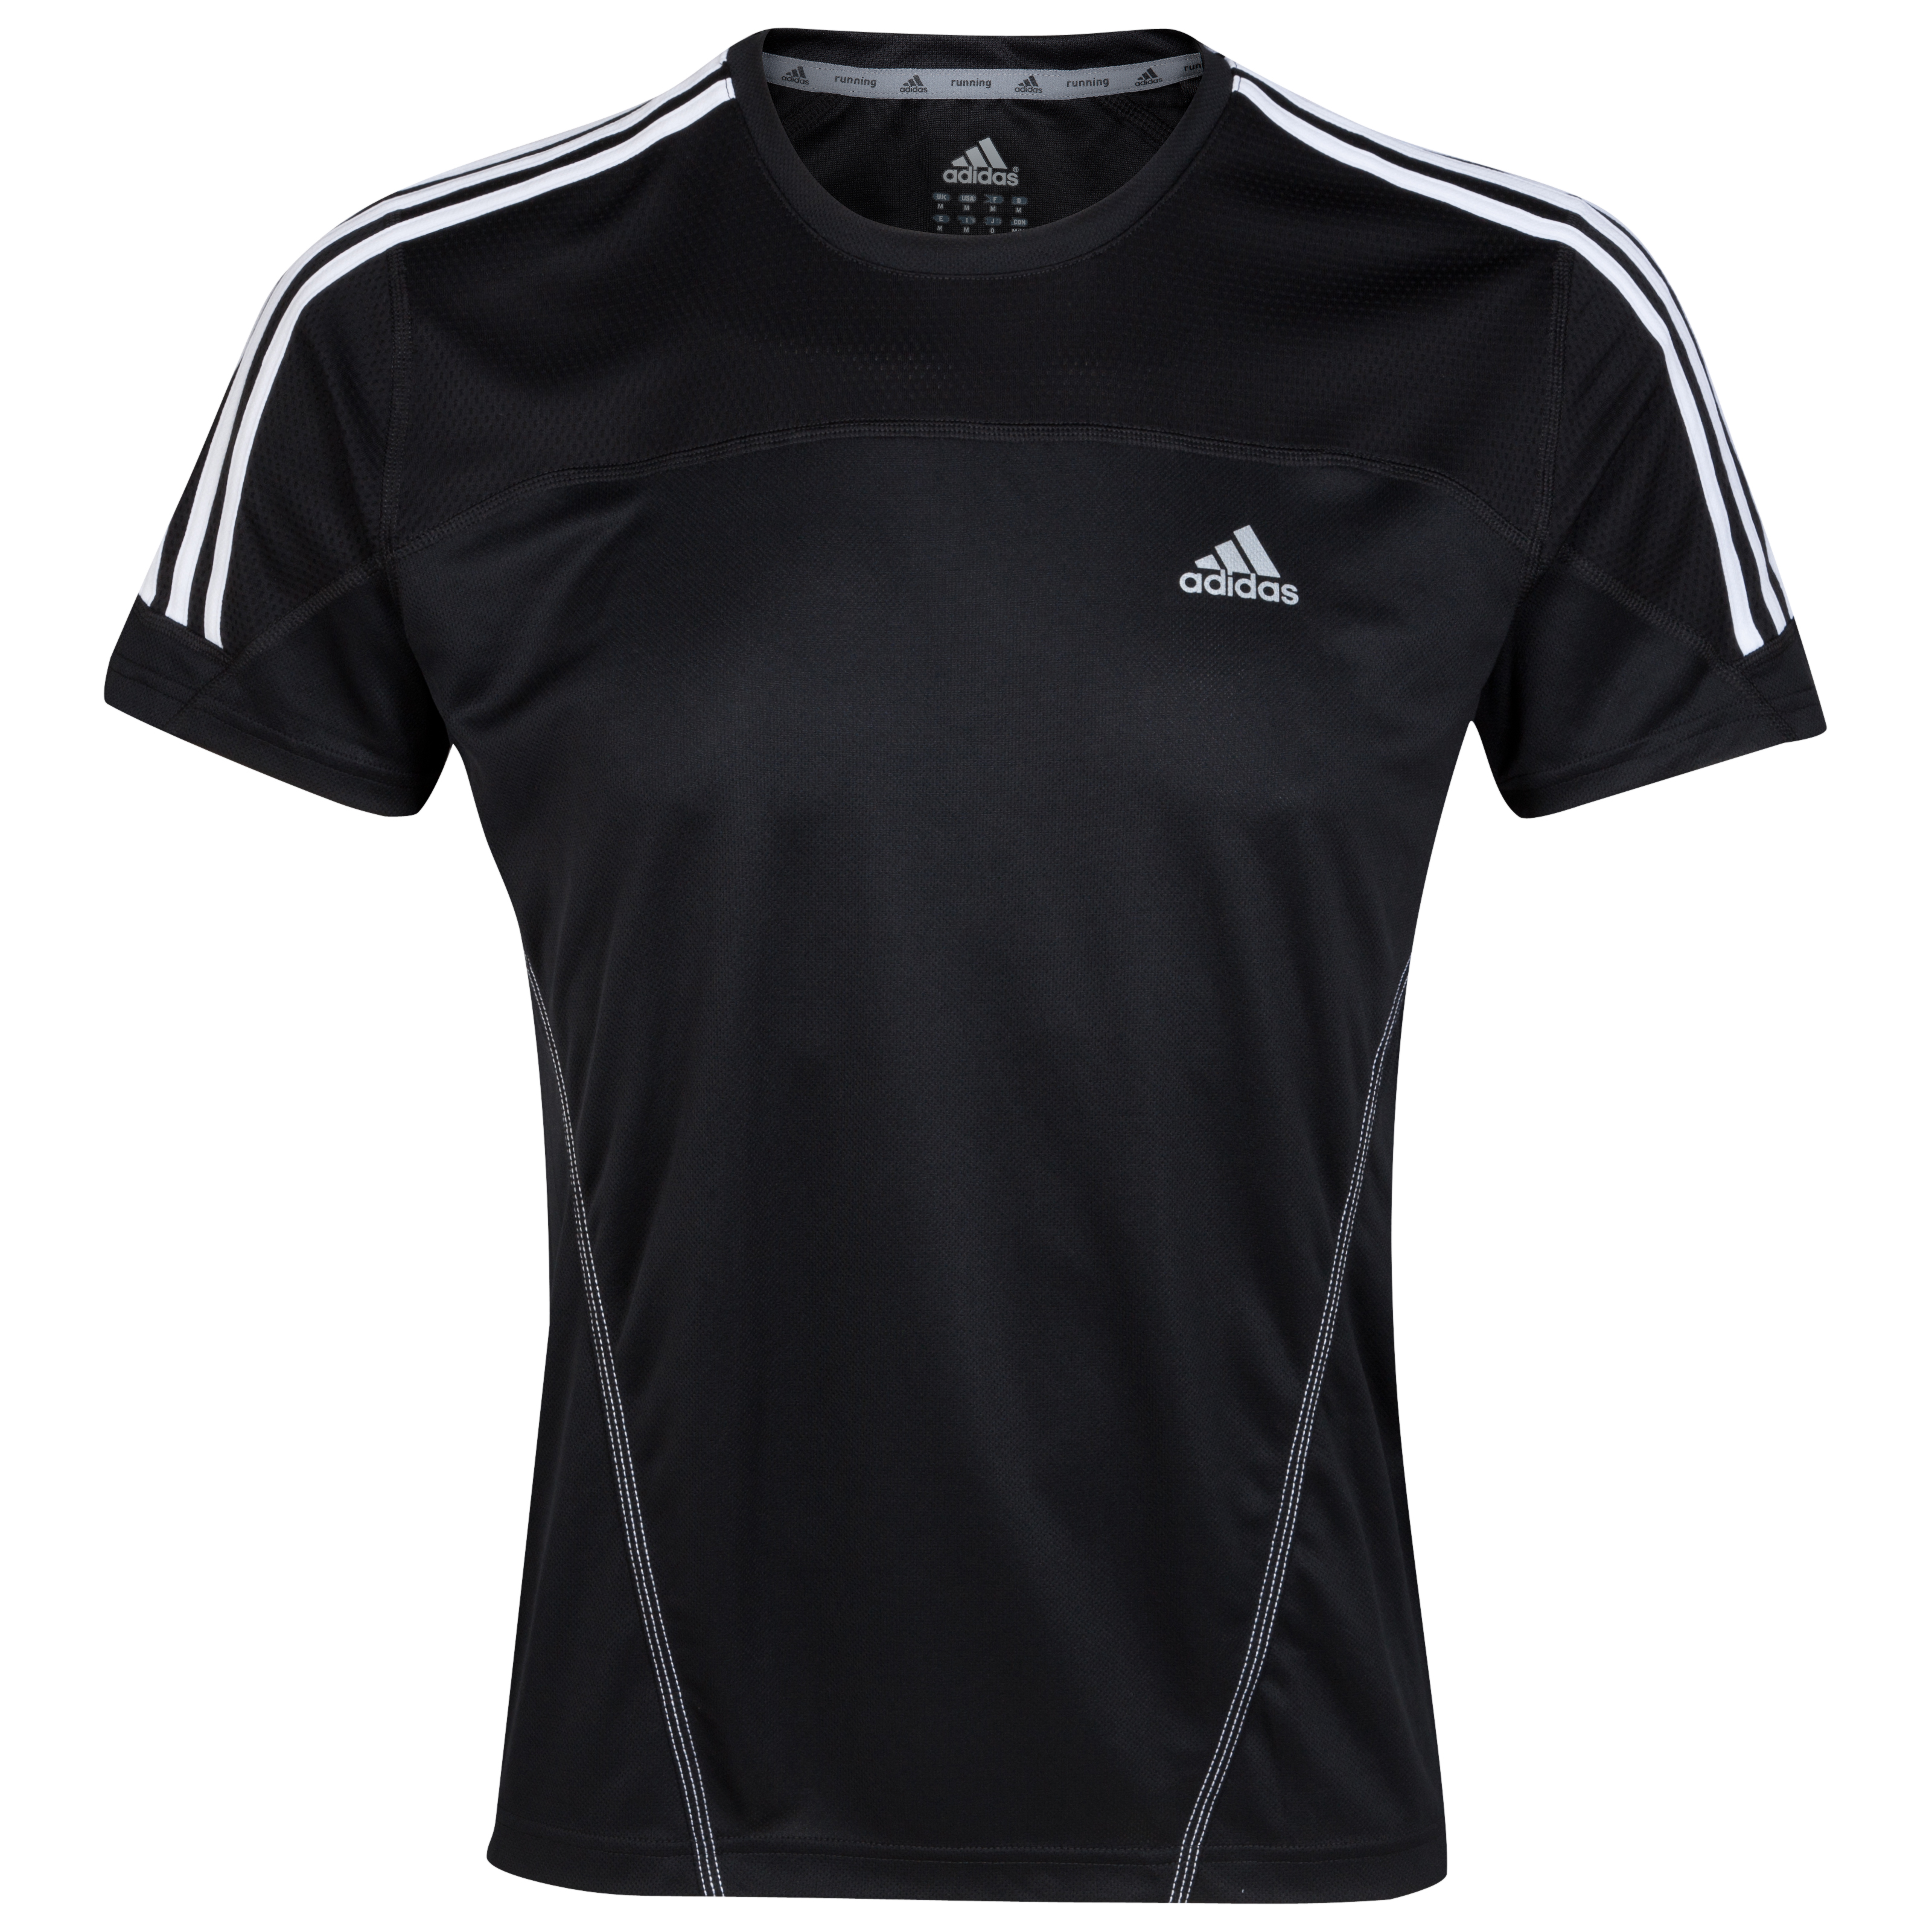 Adidas Response DS T-Shirt - Black/White